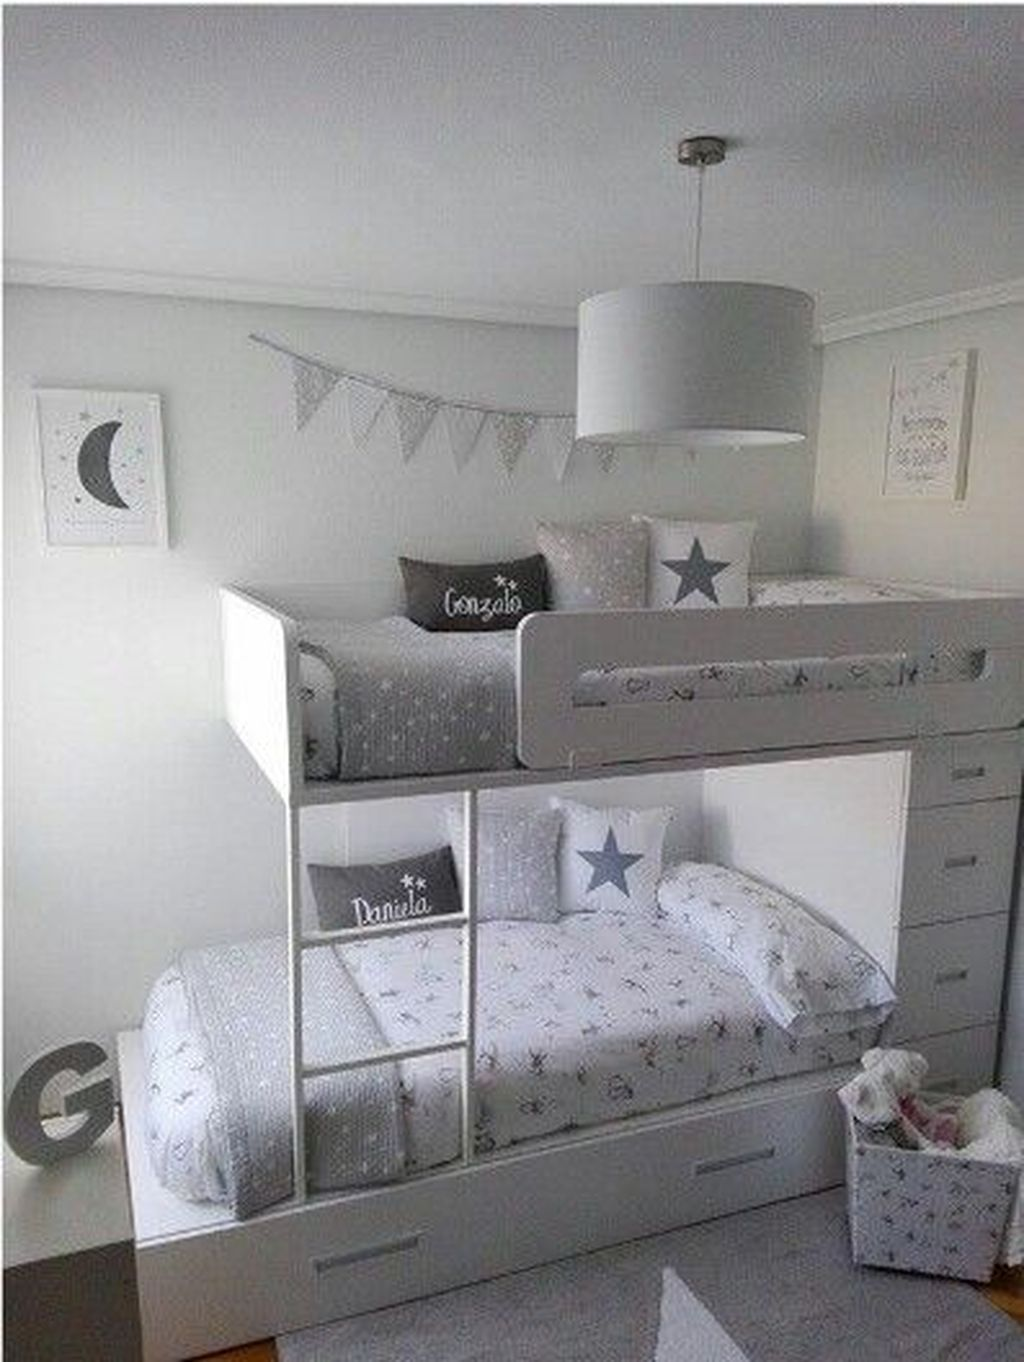 44 unique floating bunk beds design that you need to know on wonderful ideas of bunk beds for your kids bedroom id=53038